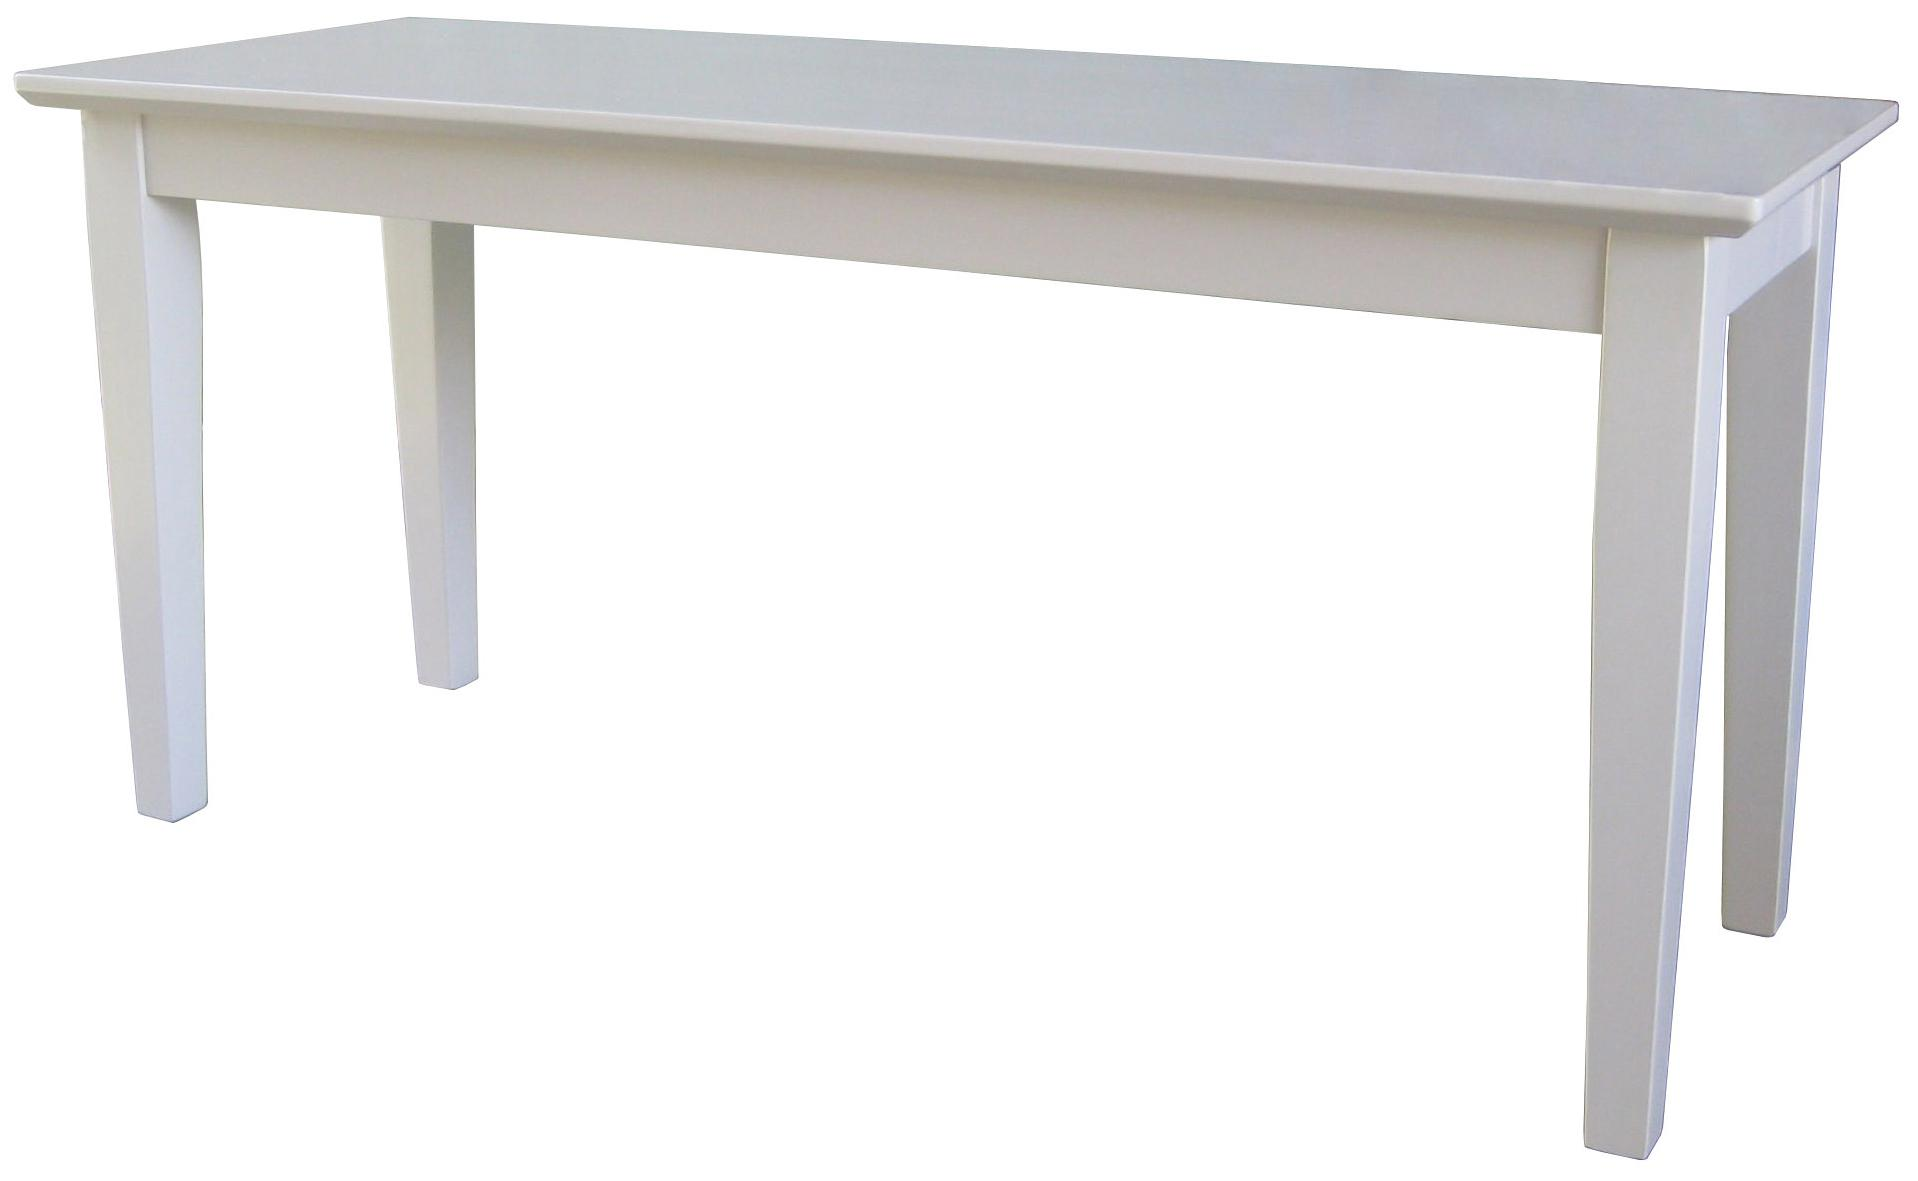 John Thomas Dining Essentials Contemporary Dining Bench - Item Number: BE31-39